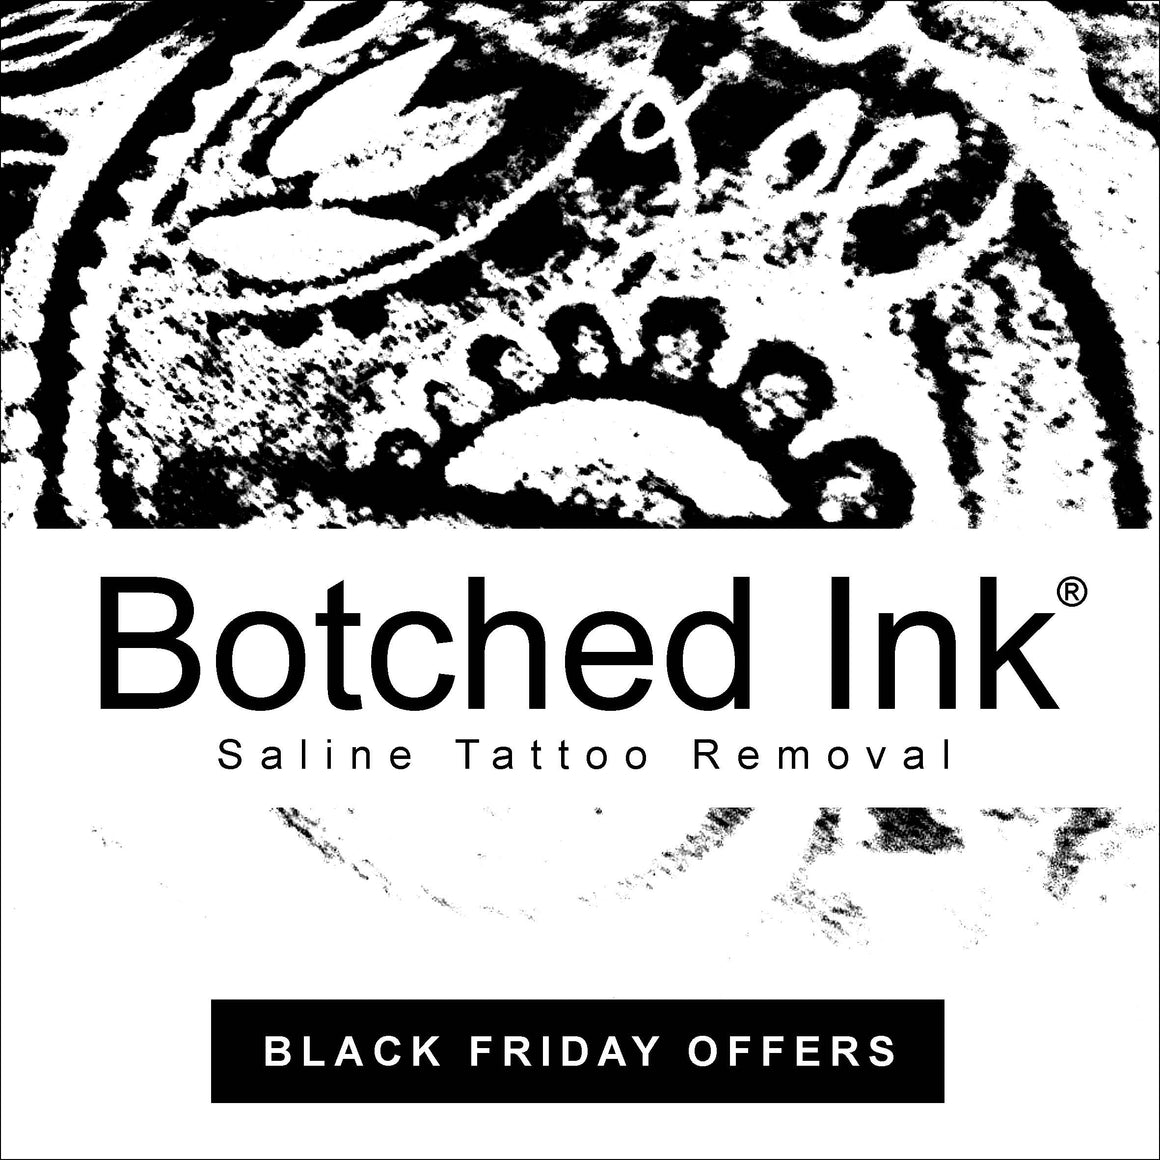 Botched Ink® Saline Tattoo Removal Training Course Workshop Permanent Makeup Microblading Scalp Micropigmentation